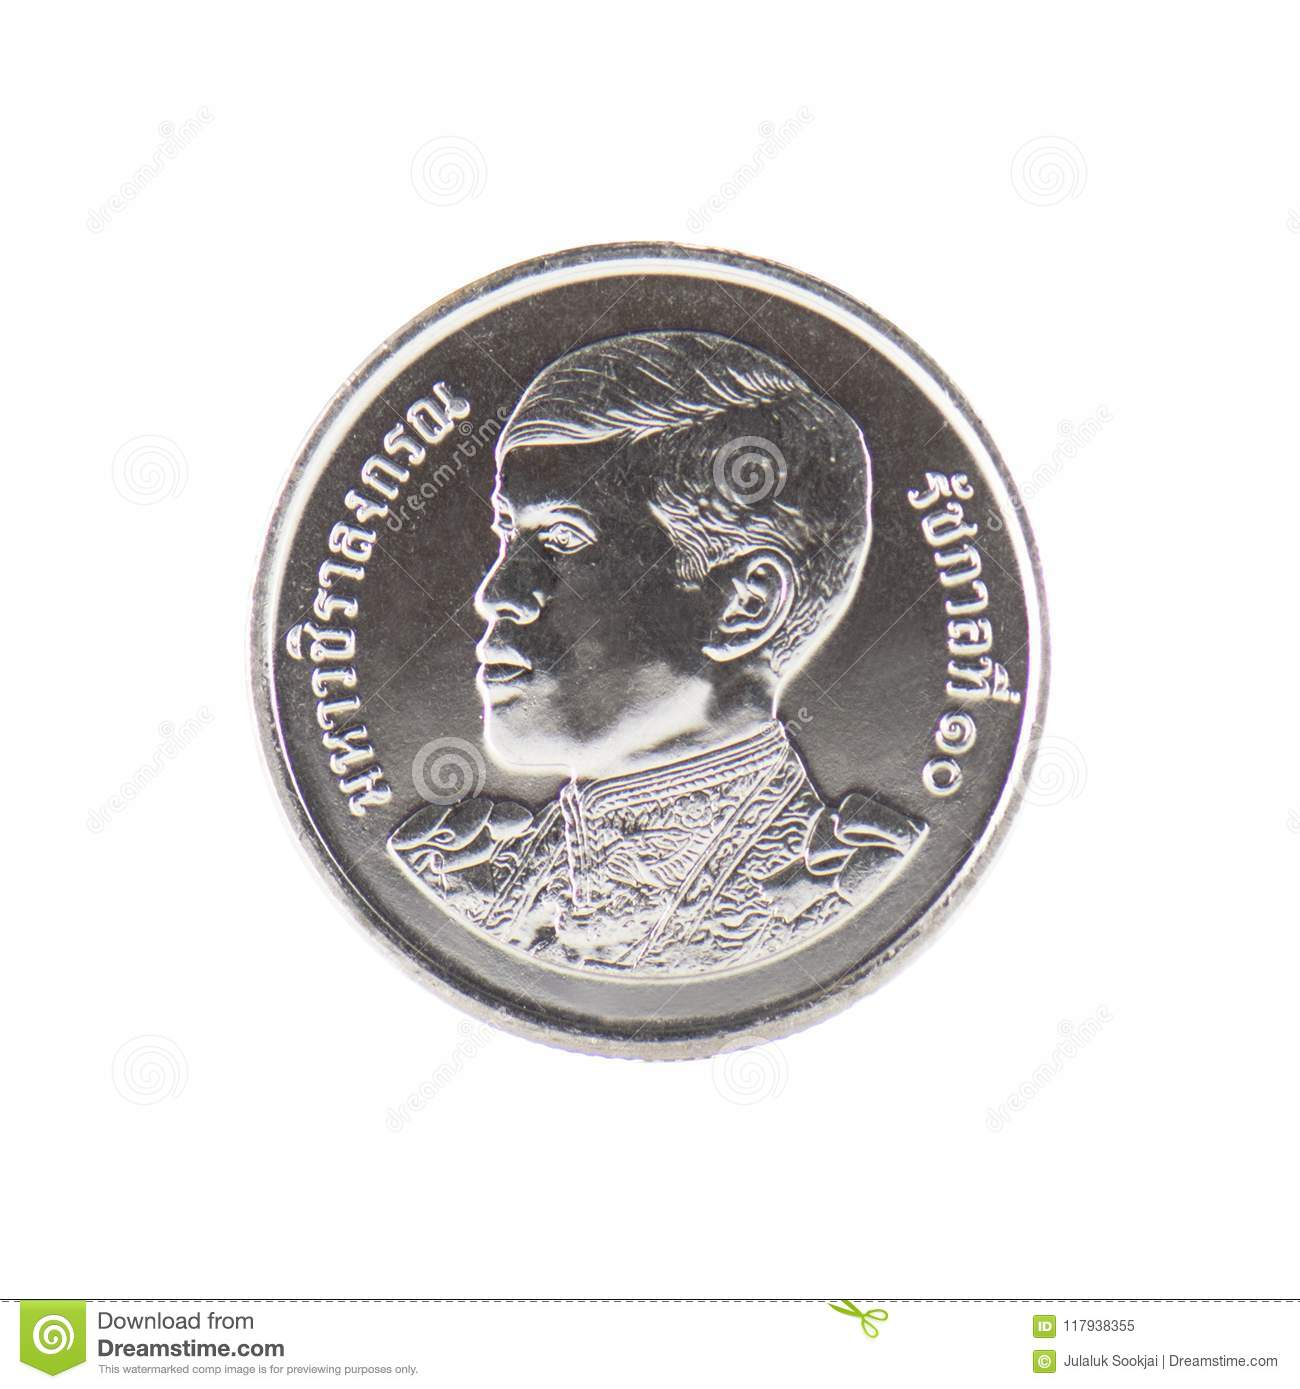 New coin in market